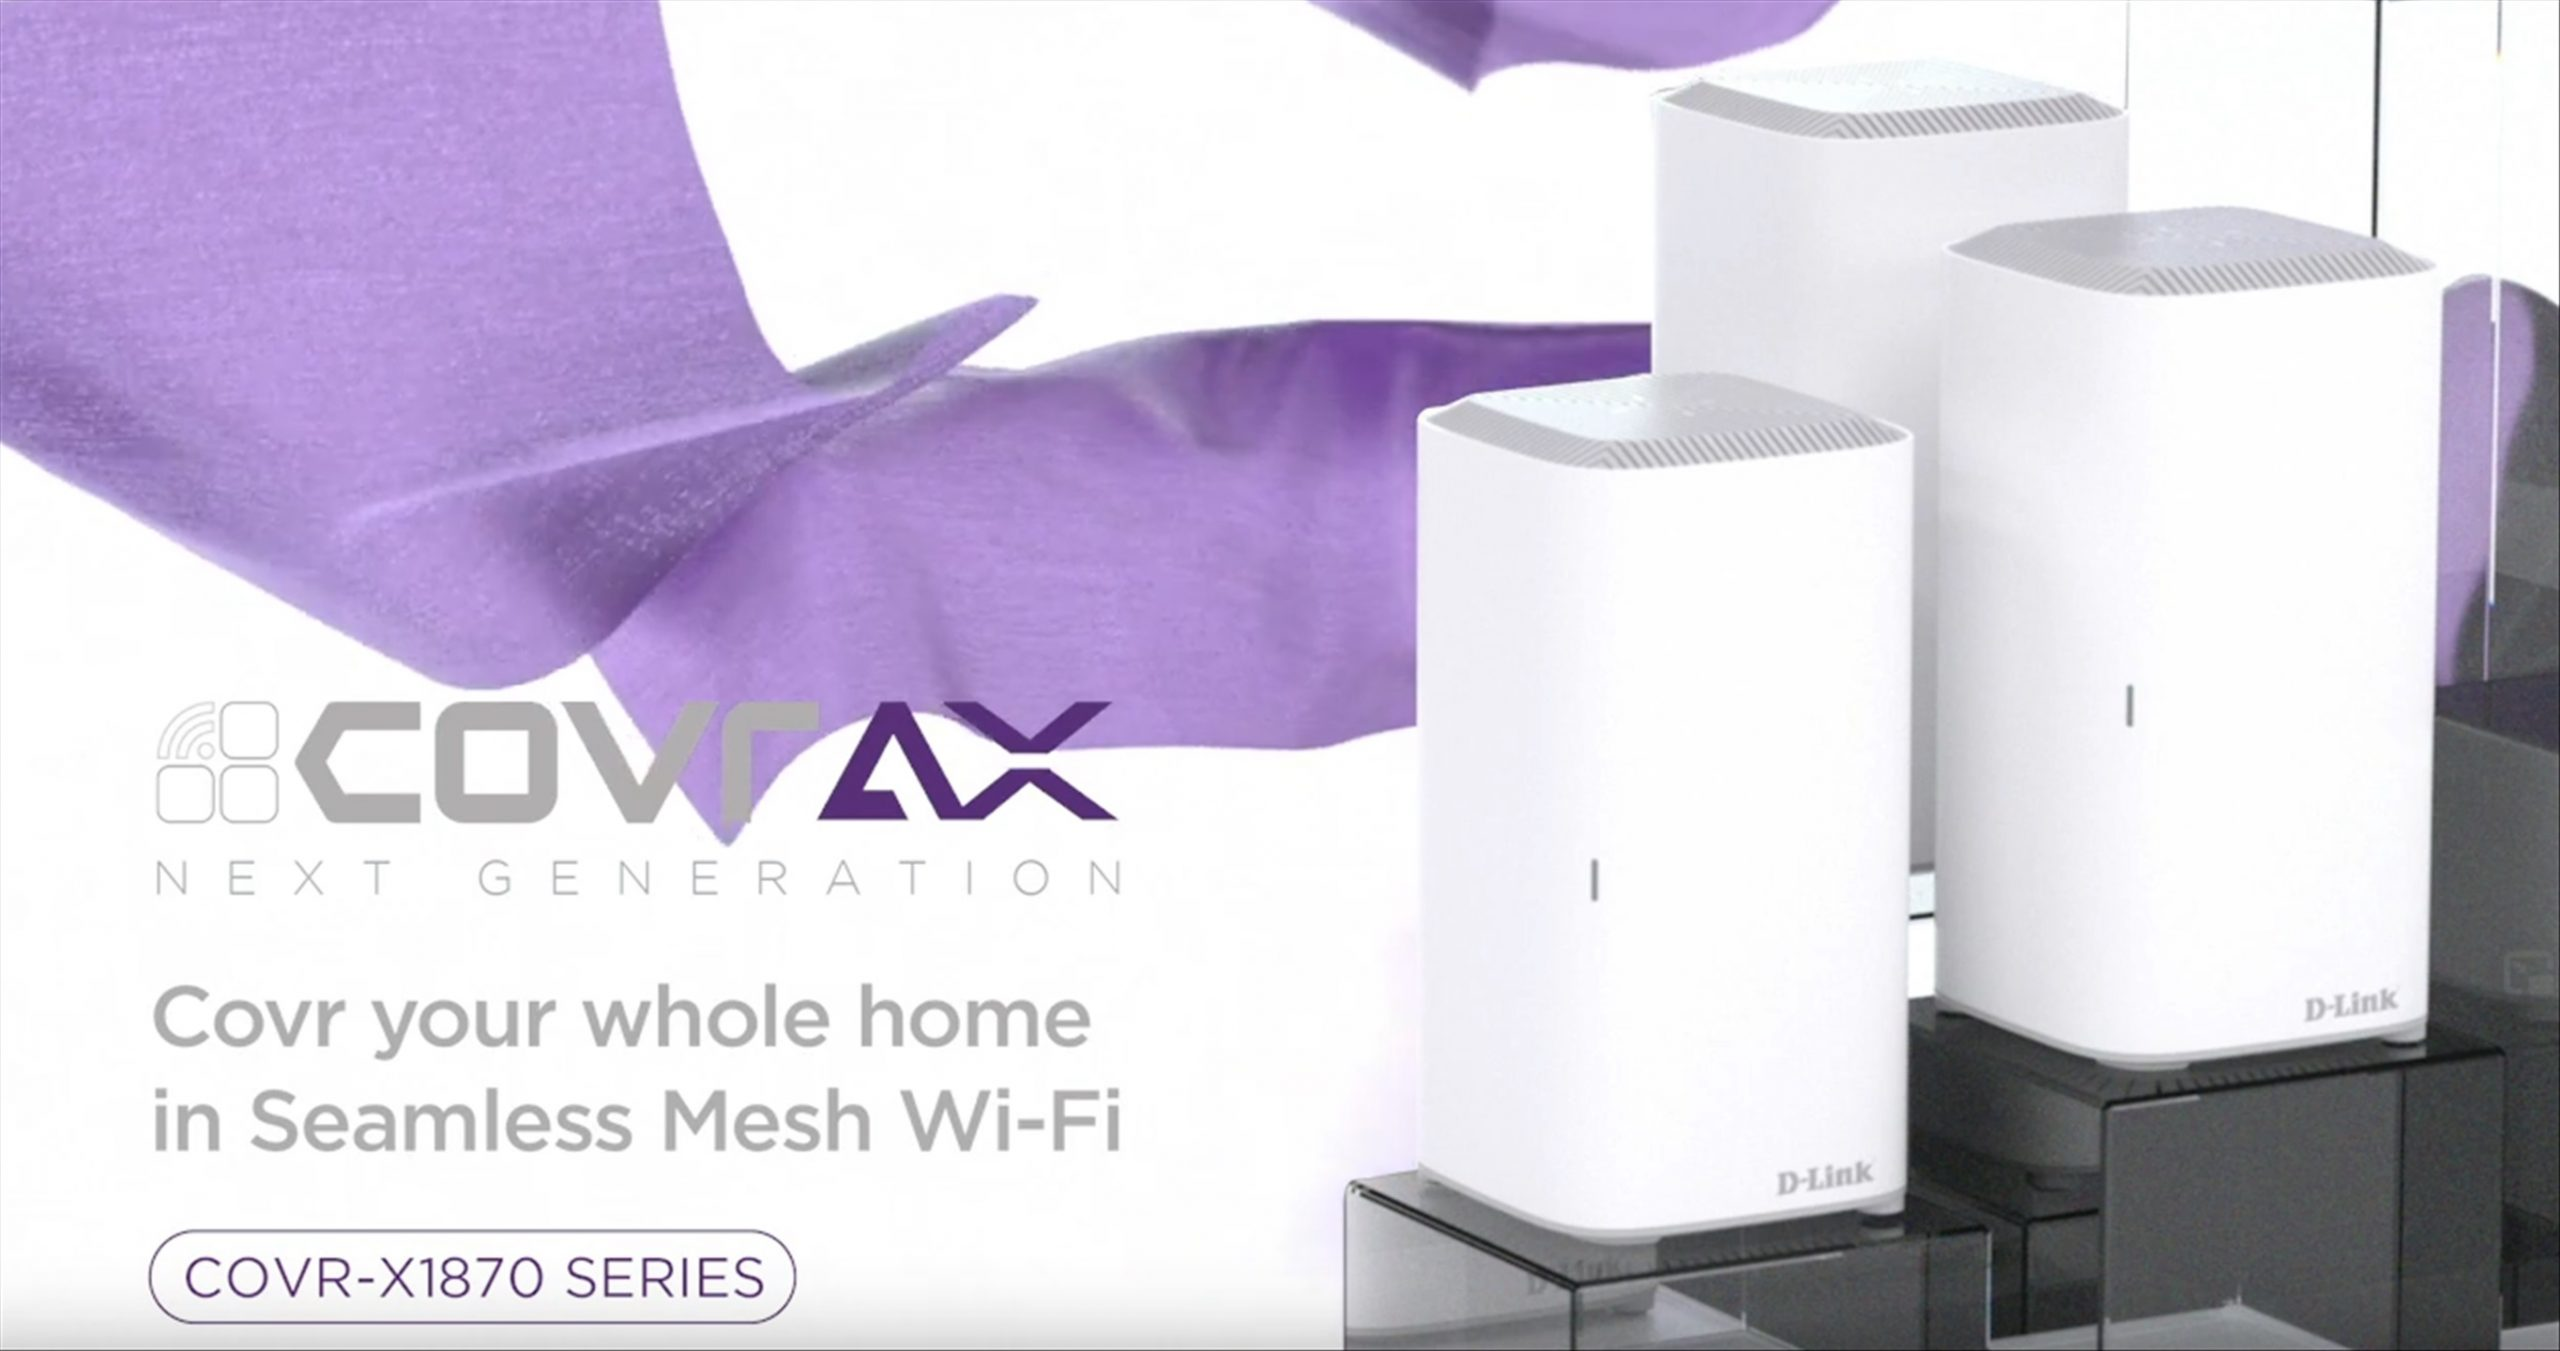 D-Link launches their new Wi-Fi 6 Mesh Router System, the COVR-X1870 Series